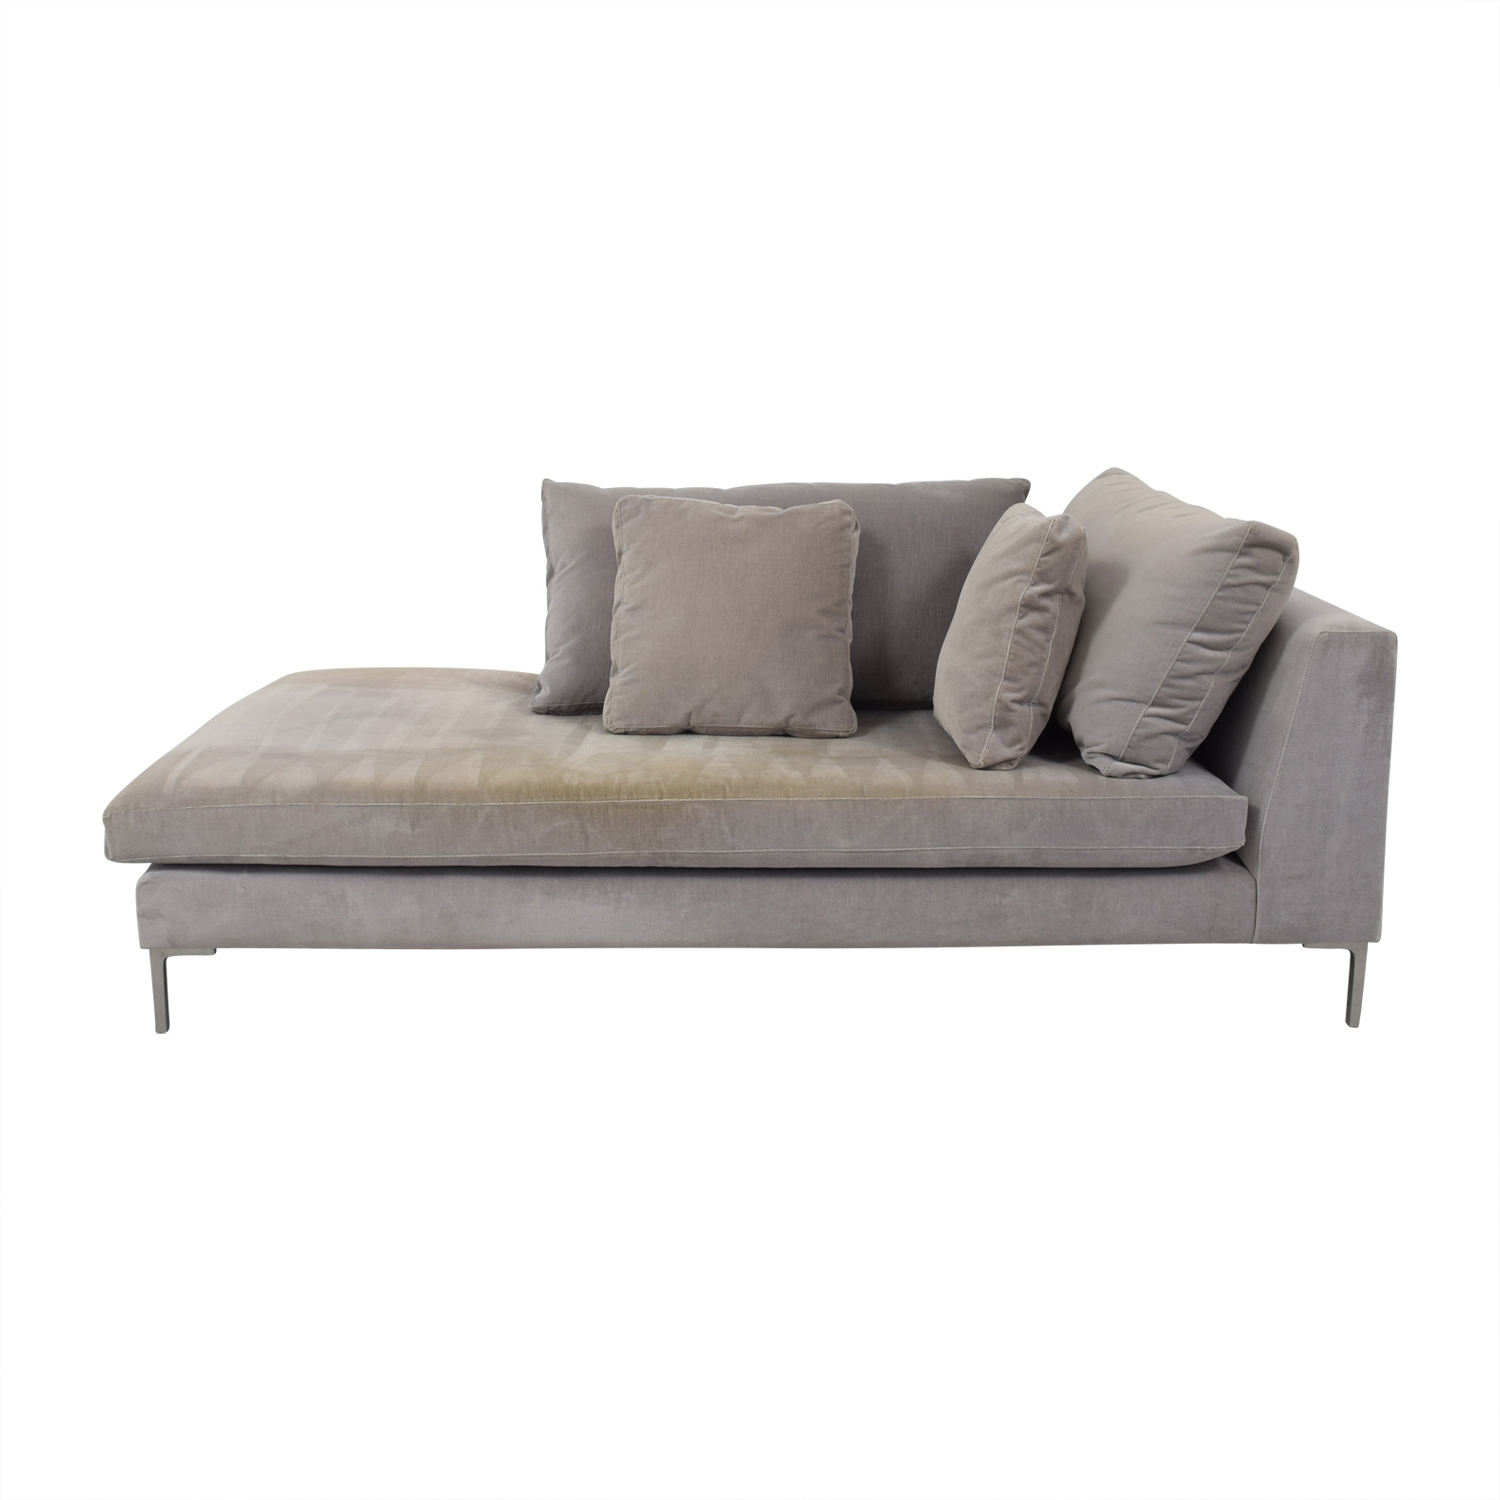 [%87% Off – Abc Carpet And Home Abc Right Arm Velvet Chaise / Sofas Within Favorite Right Arm Chaises|Right Arm Chaises Intended For Most Current 87% Off – Abc Carpet And Home Abc Right Arm Velvet Chaise / Sofas|Famous Right Arm Chaises In 87% Off – Abc Carpet And Home Abc Right Arm Velvet Chaise / Sofas|Popular 87% Off – Abc Carpet And Home Abc Right Arm Velvet Chaise / Sofas Within Right Arm Chaises%] (View 9 of 15)